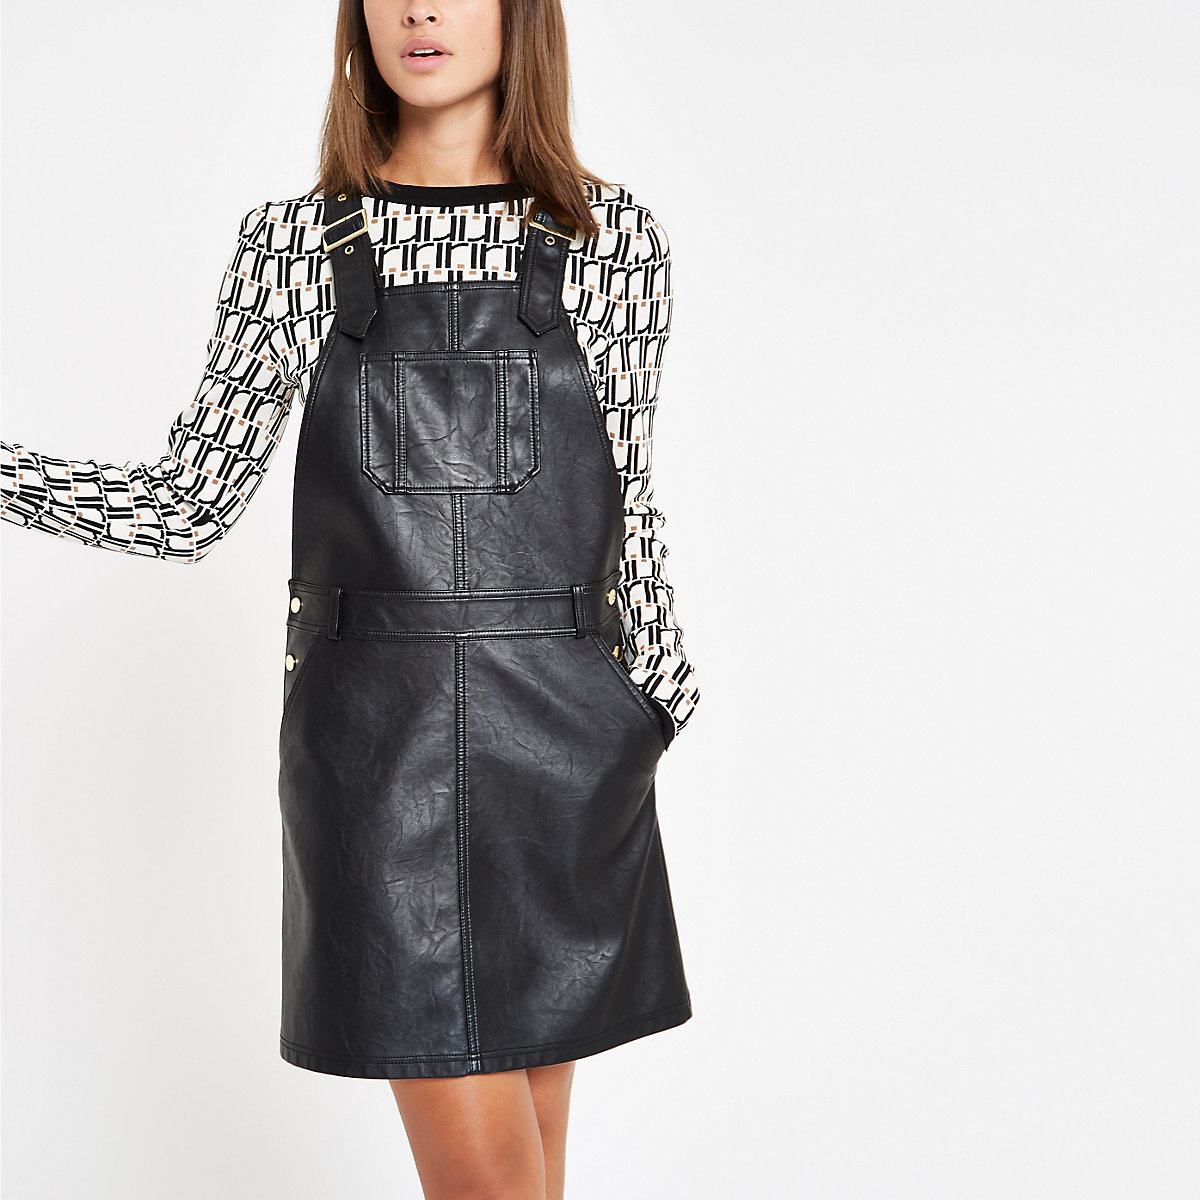 Black faux leather pinafore dungaree dress